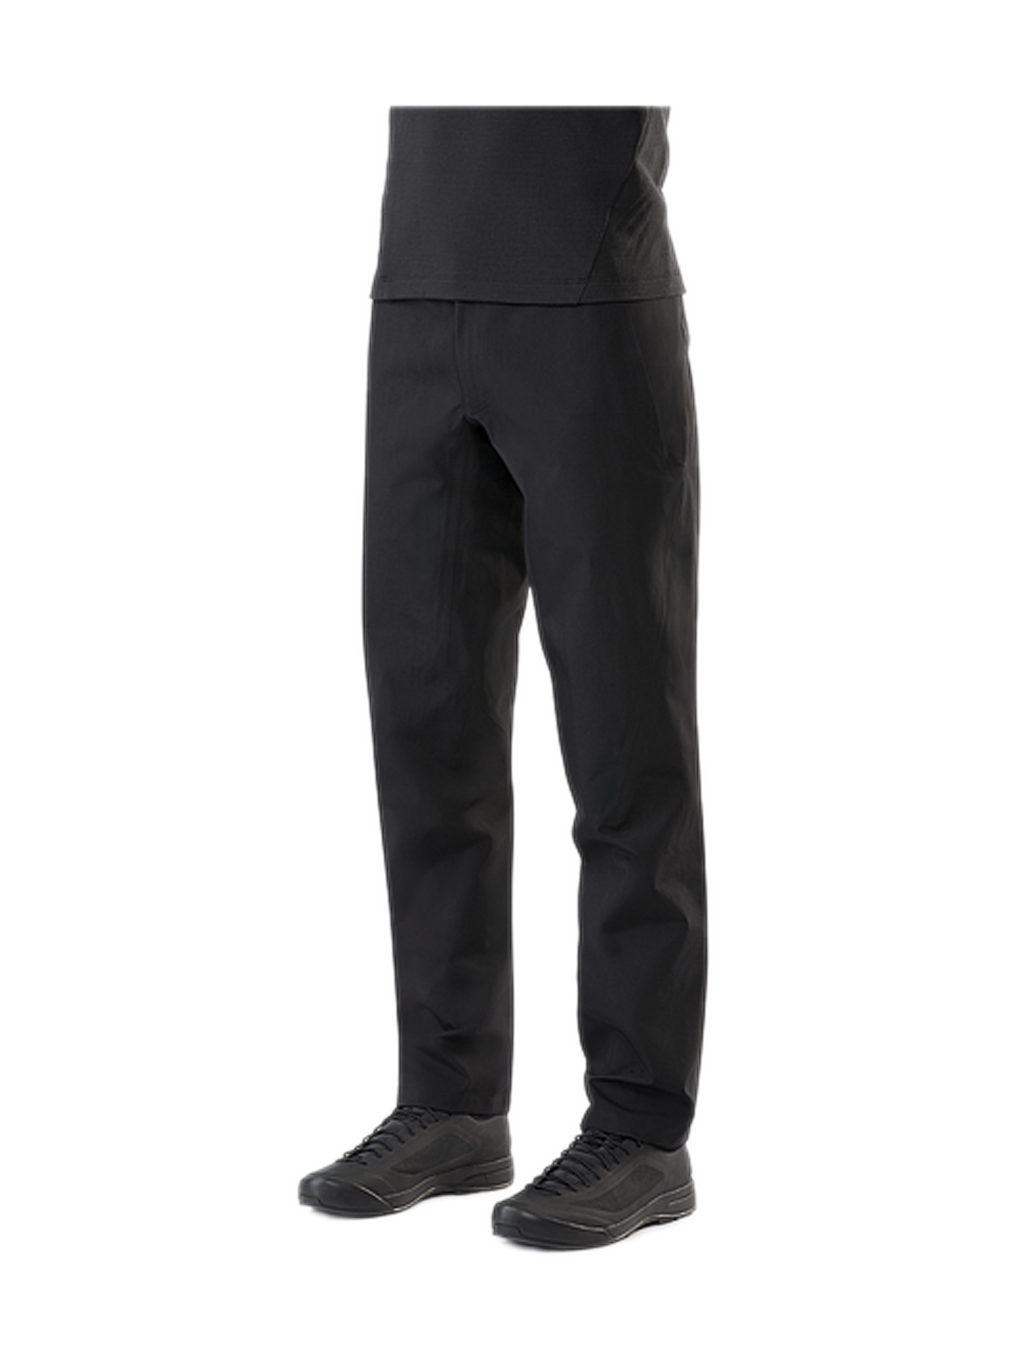 Black Sequent AR Pants